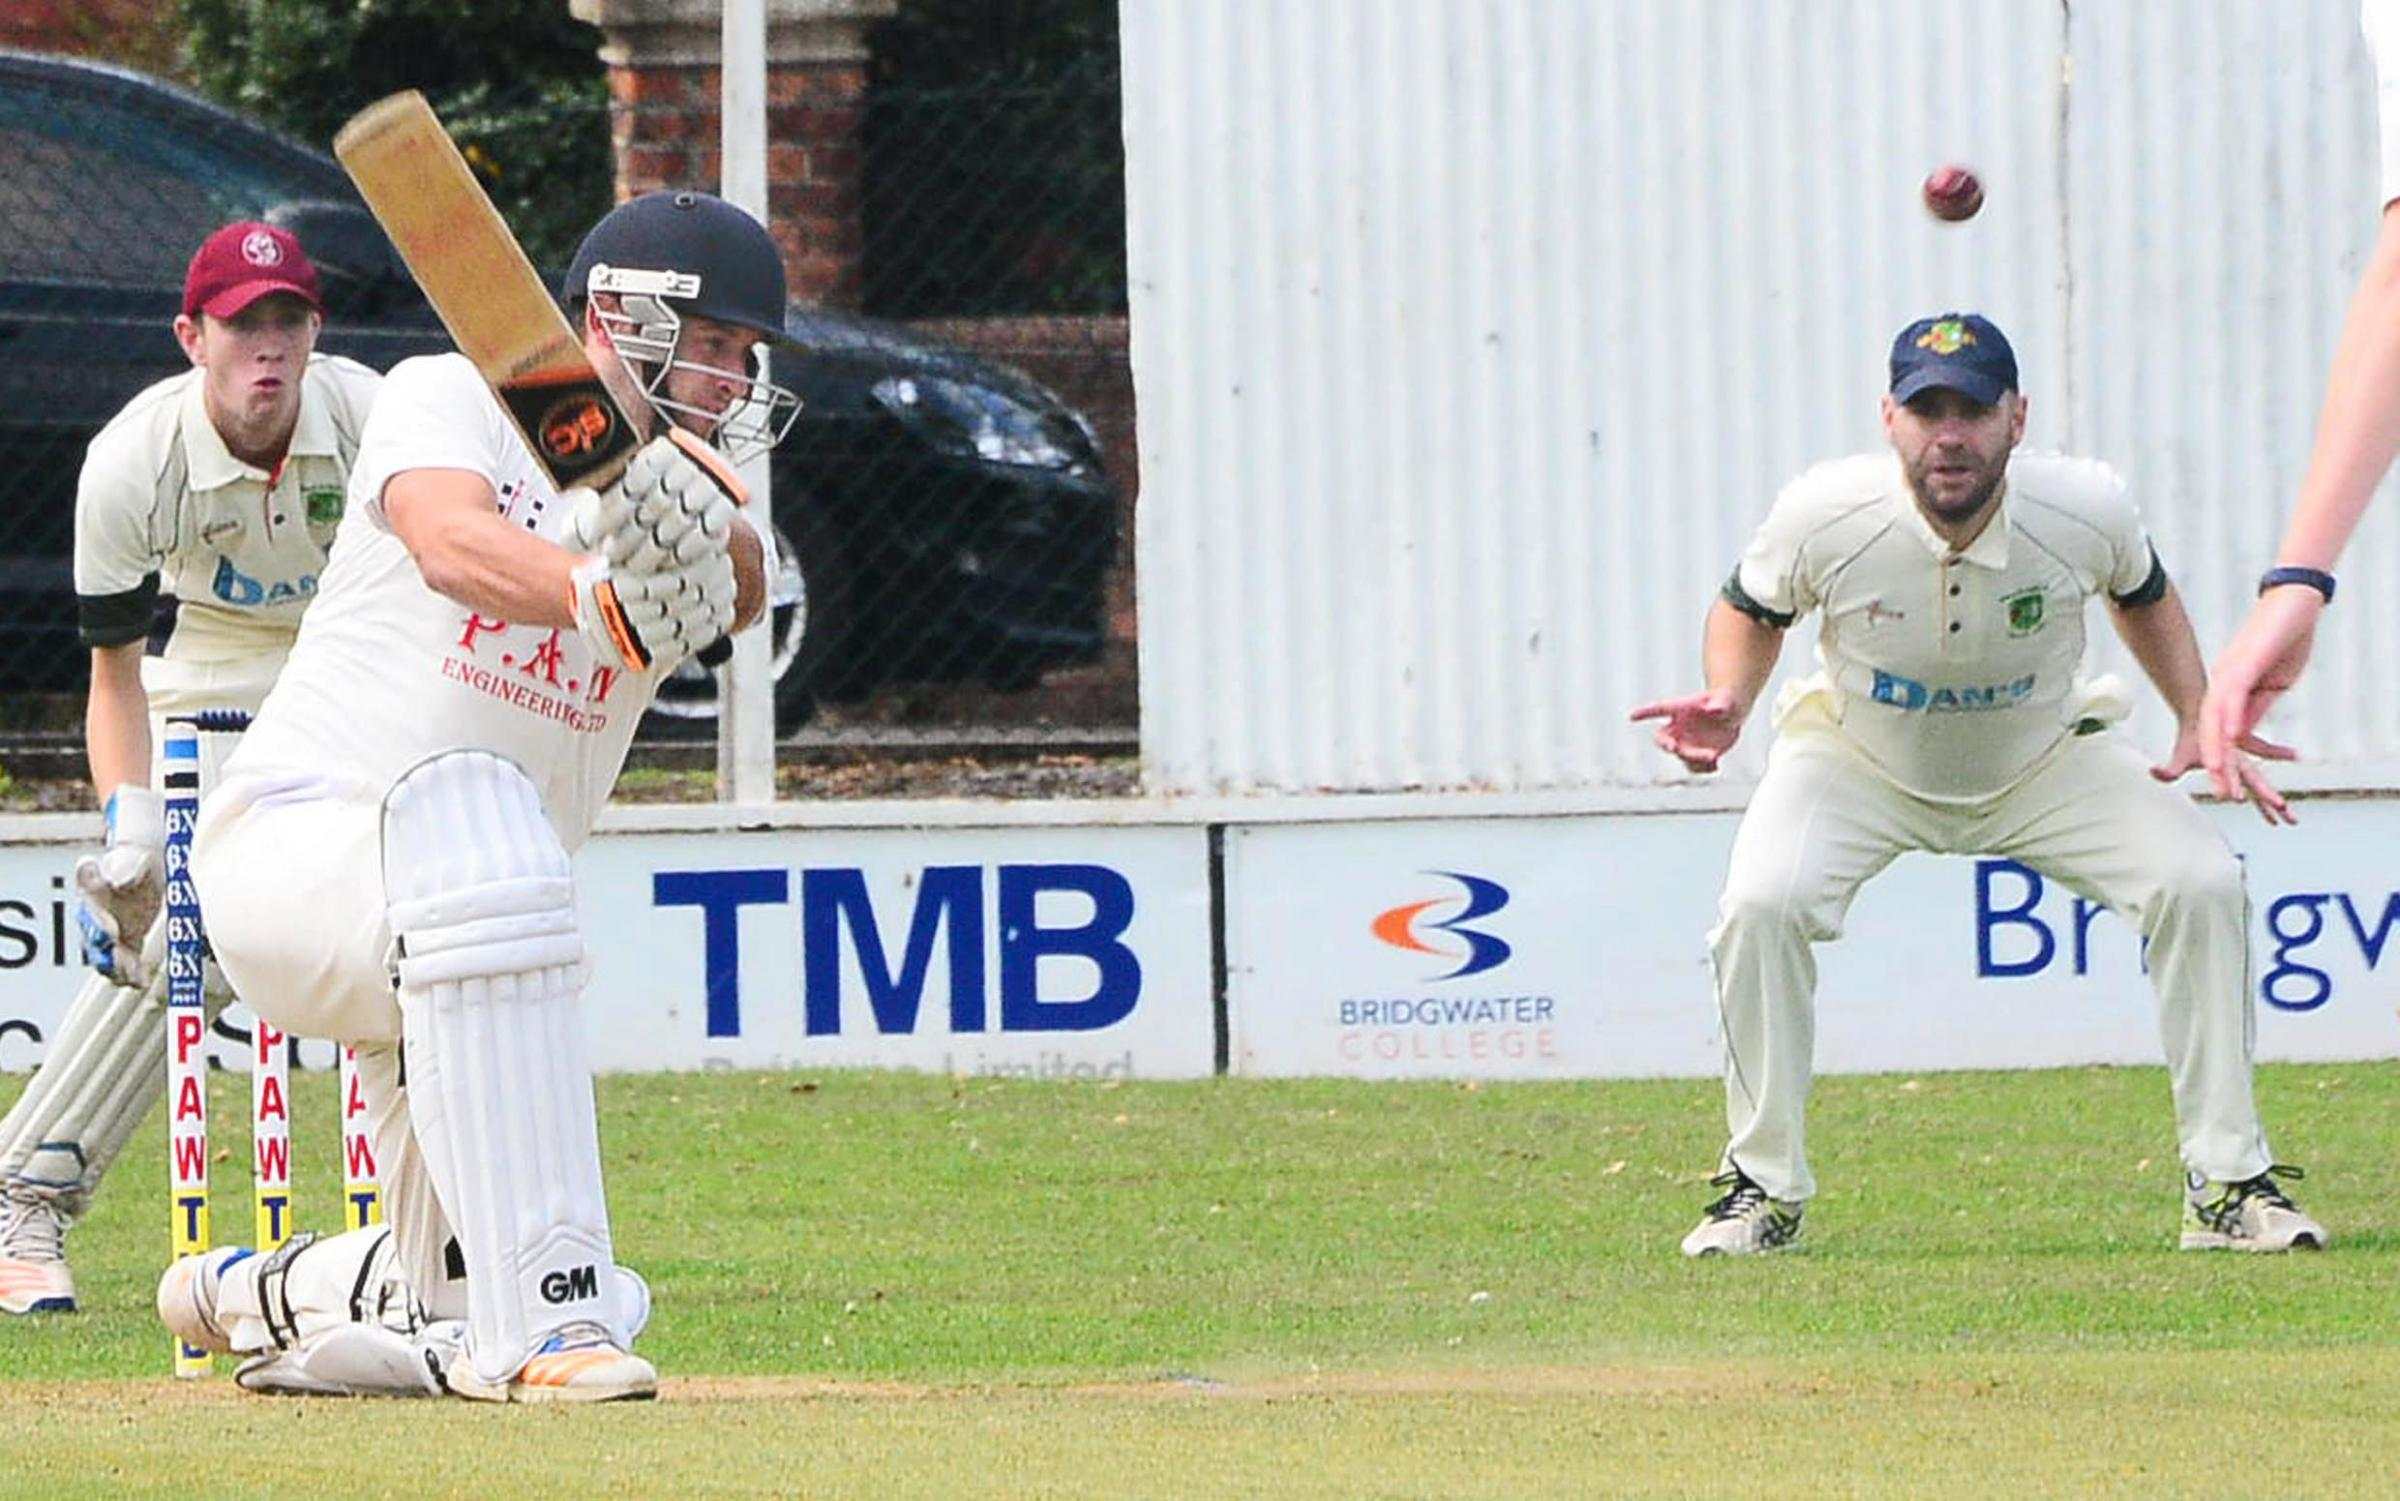 TON UP: Tom Bellinger on his way to 155 for Bridgwater 2nds against North Petherton. Pic: Steve Richardson